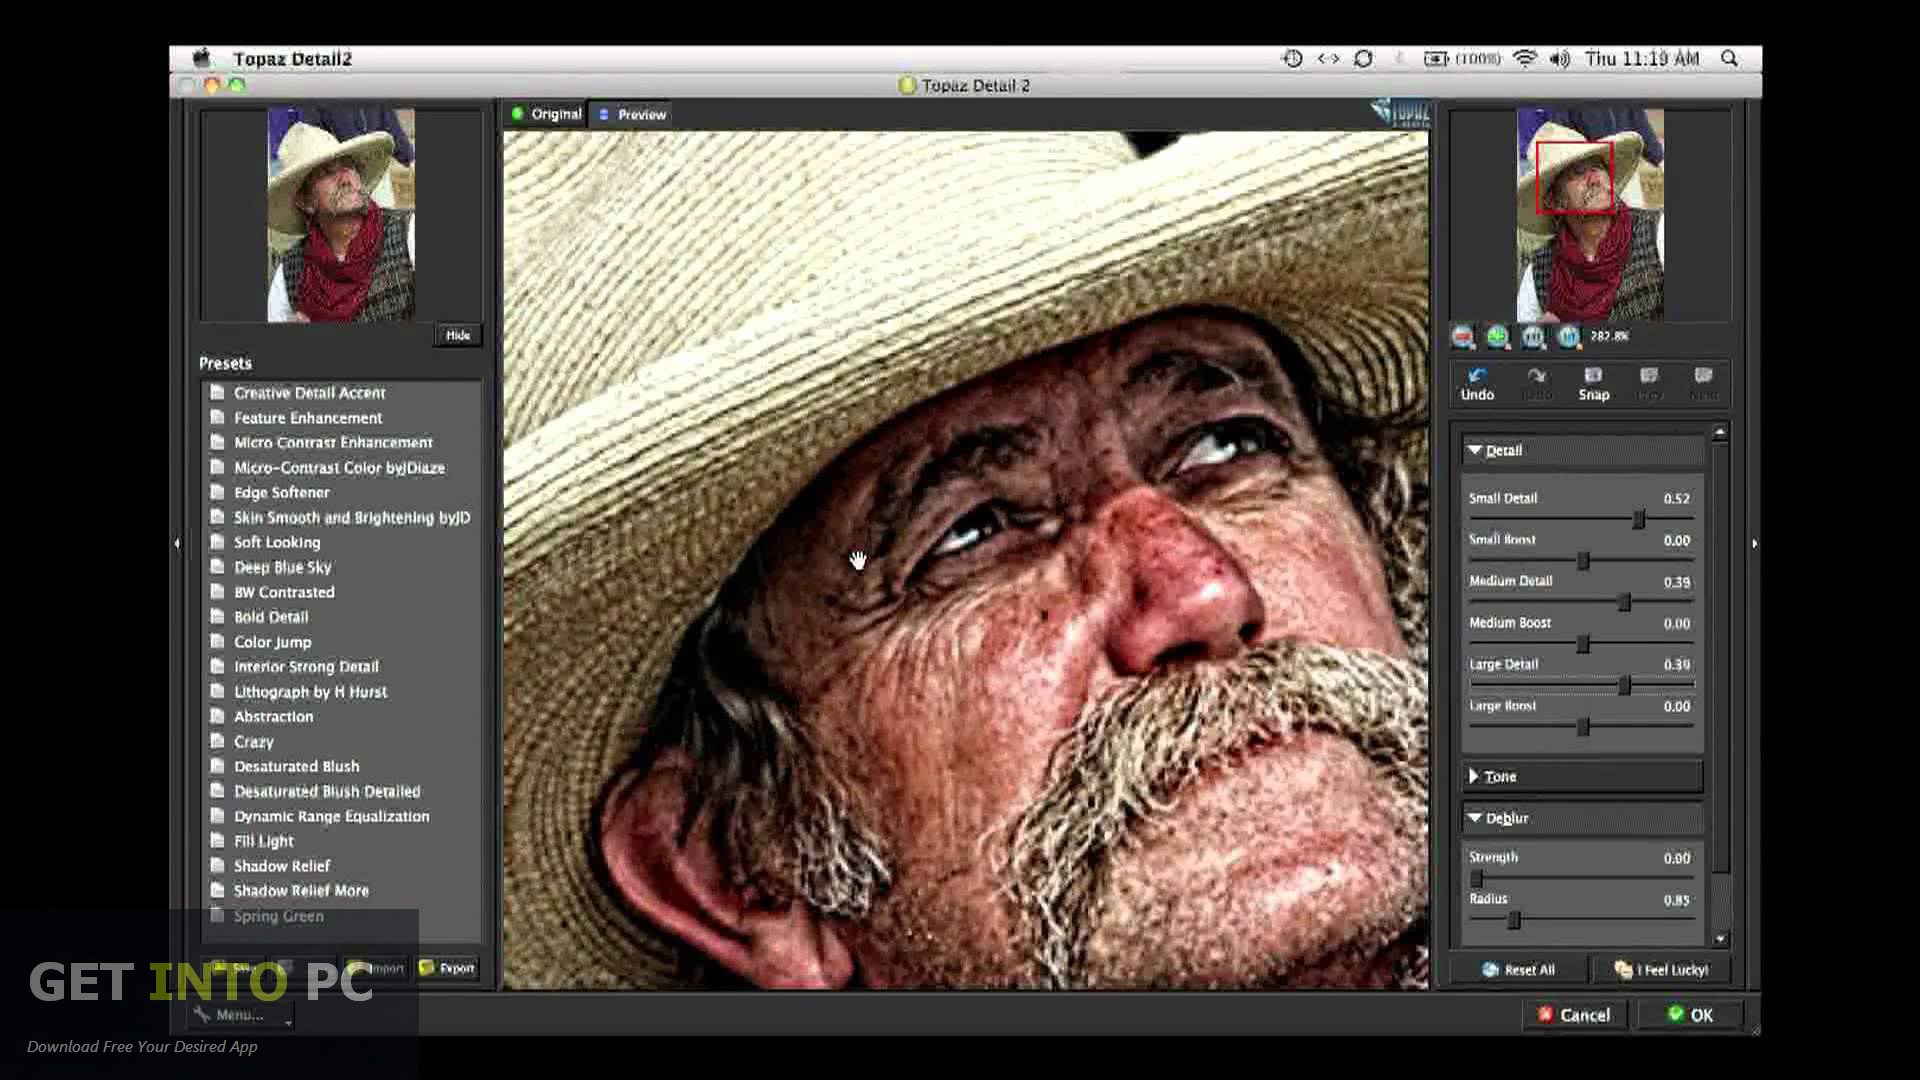 Finest Photo Effects & Image Editing Software